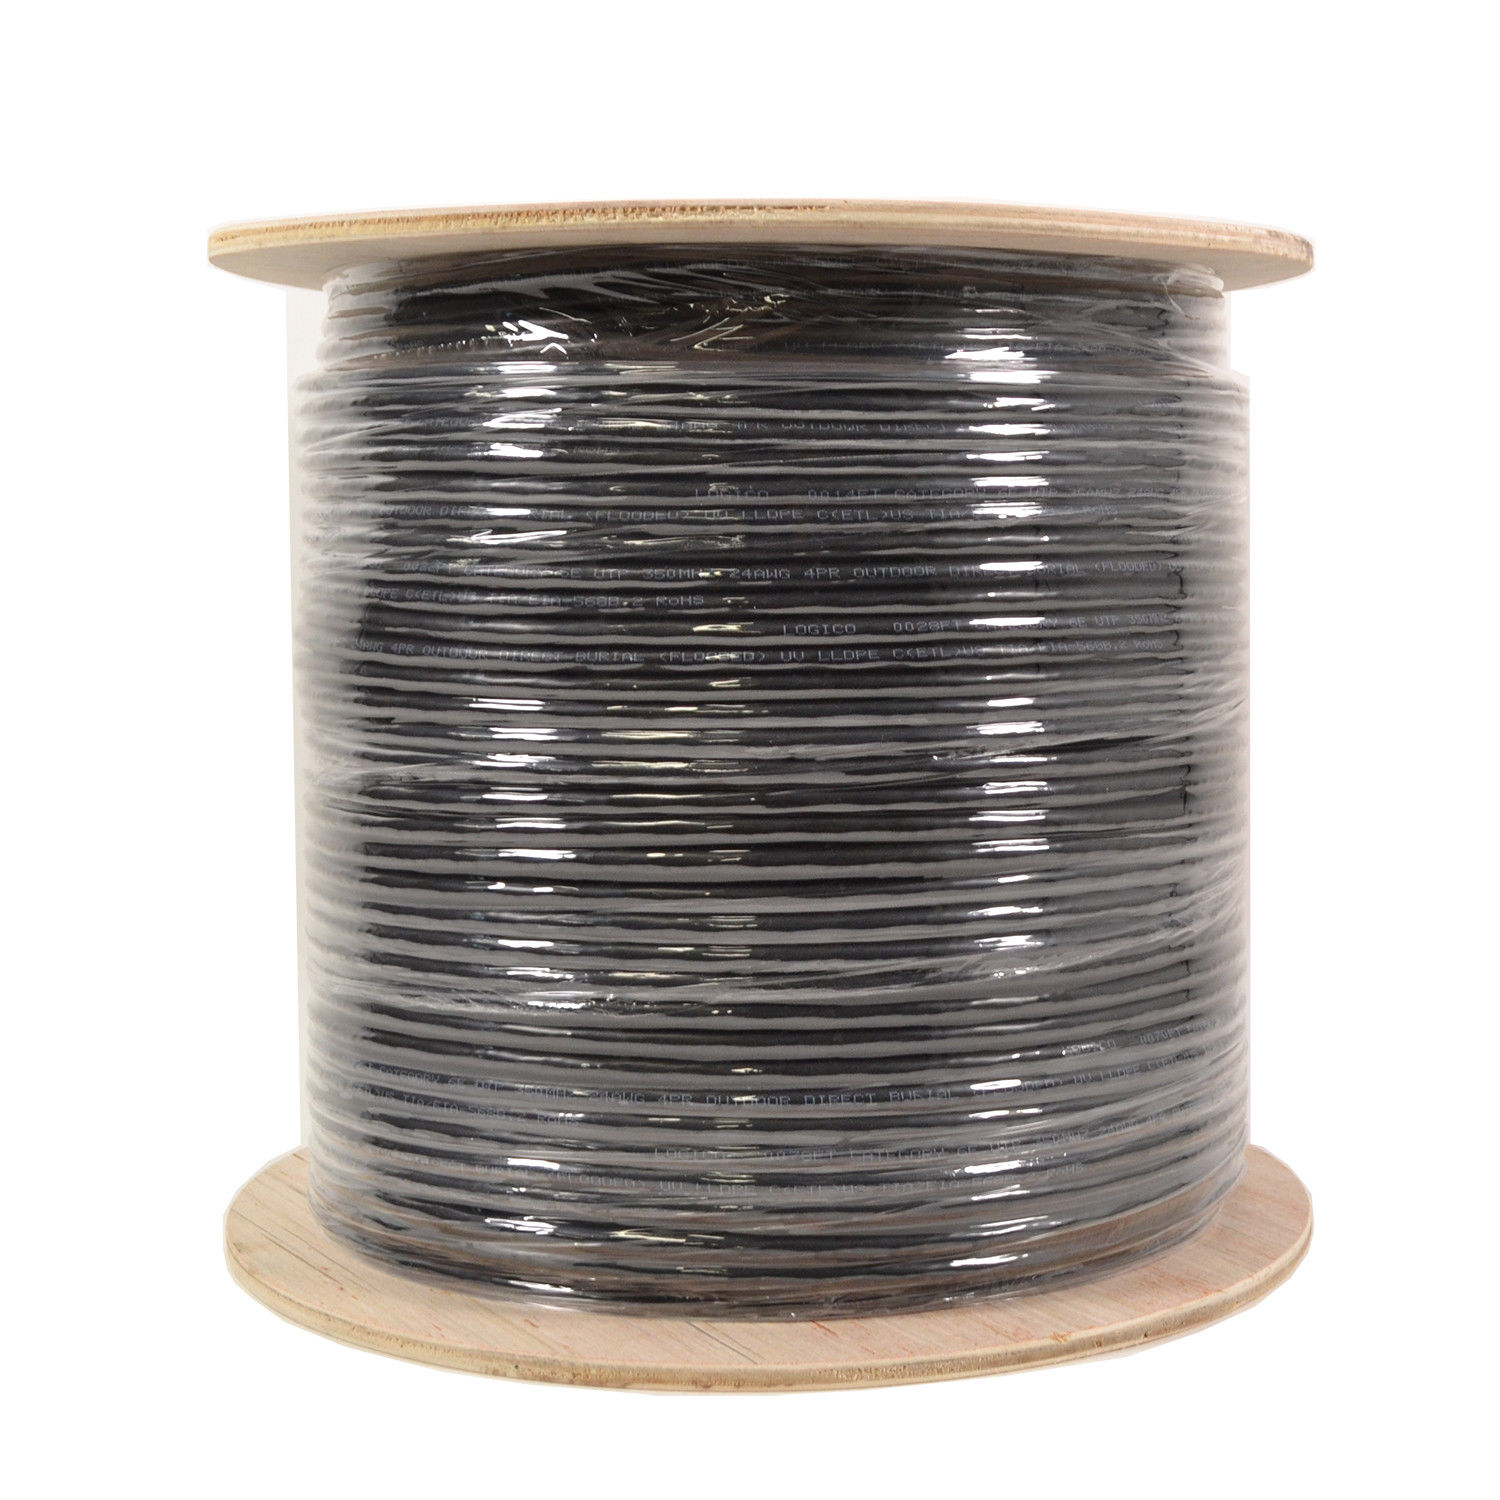 500FT CCTV CAMERA WIRE RG59 COAX//RS485//POWER PTZ DATA 18//4 SIAMESE CABLE